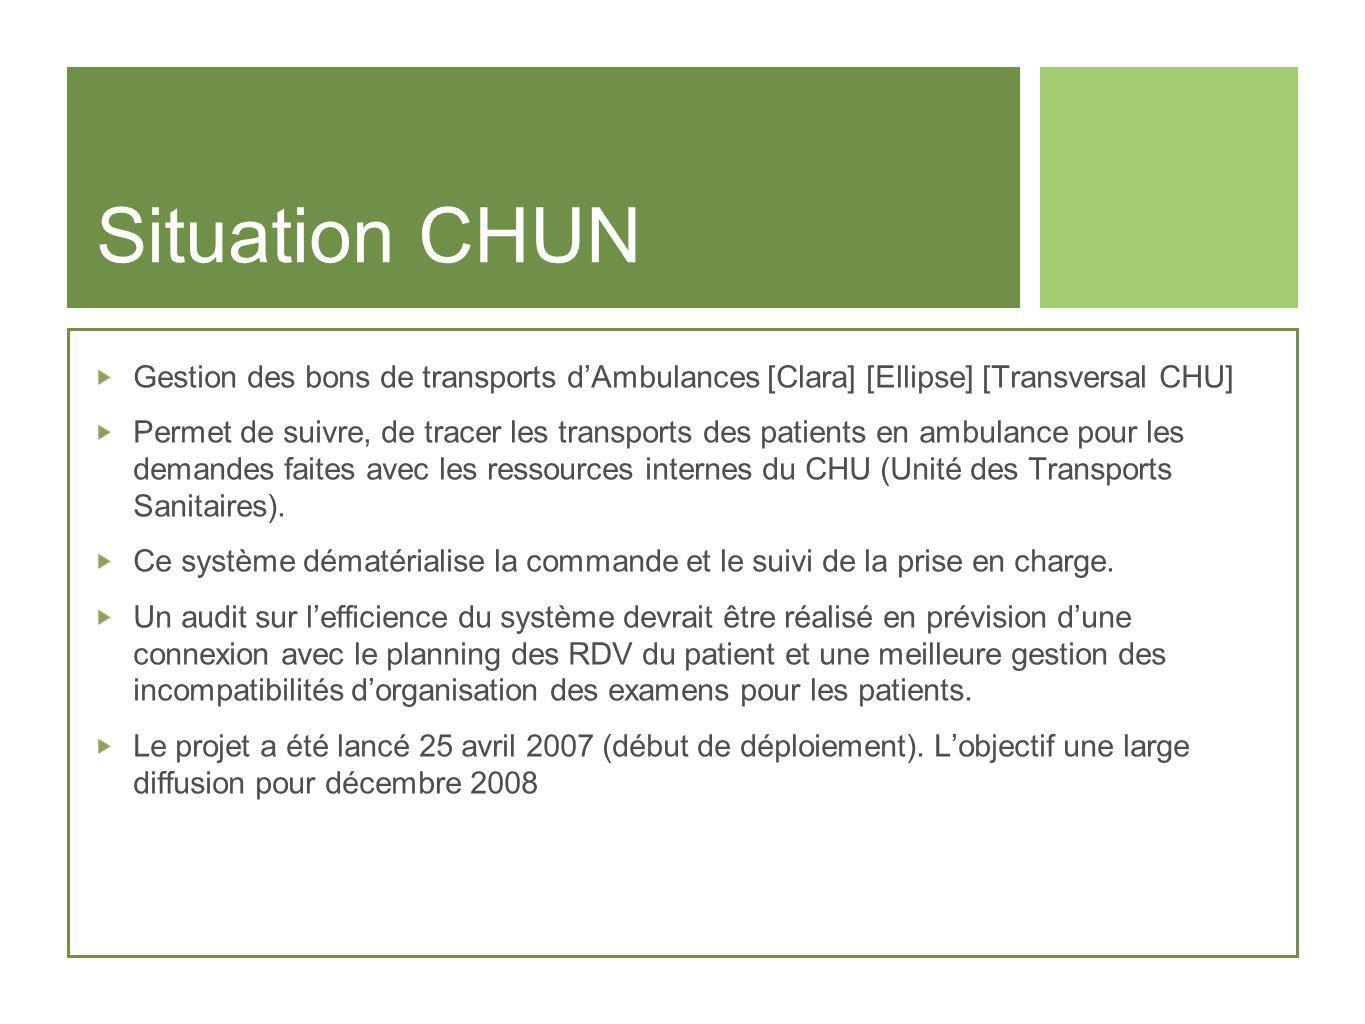 Situation CHUN Gestion des bons de transports d'Ambulances [Clara] [Ellipse] [Transversal CHU]